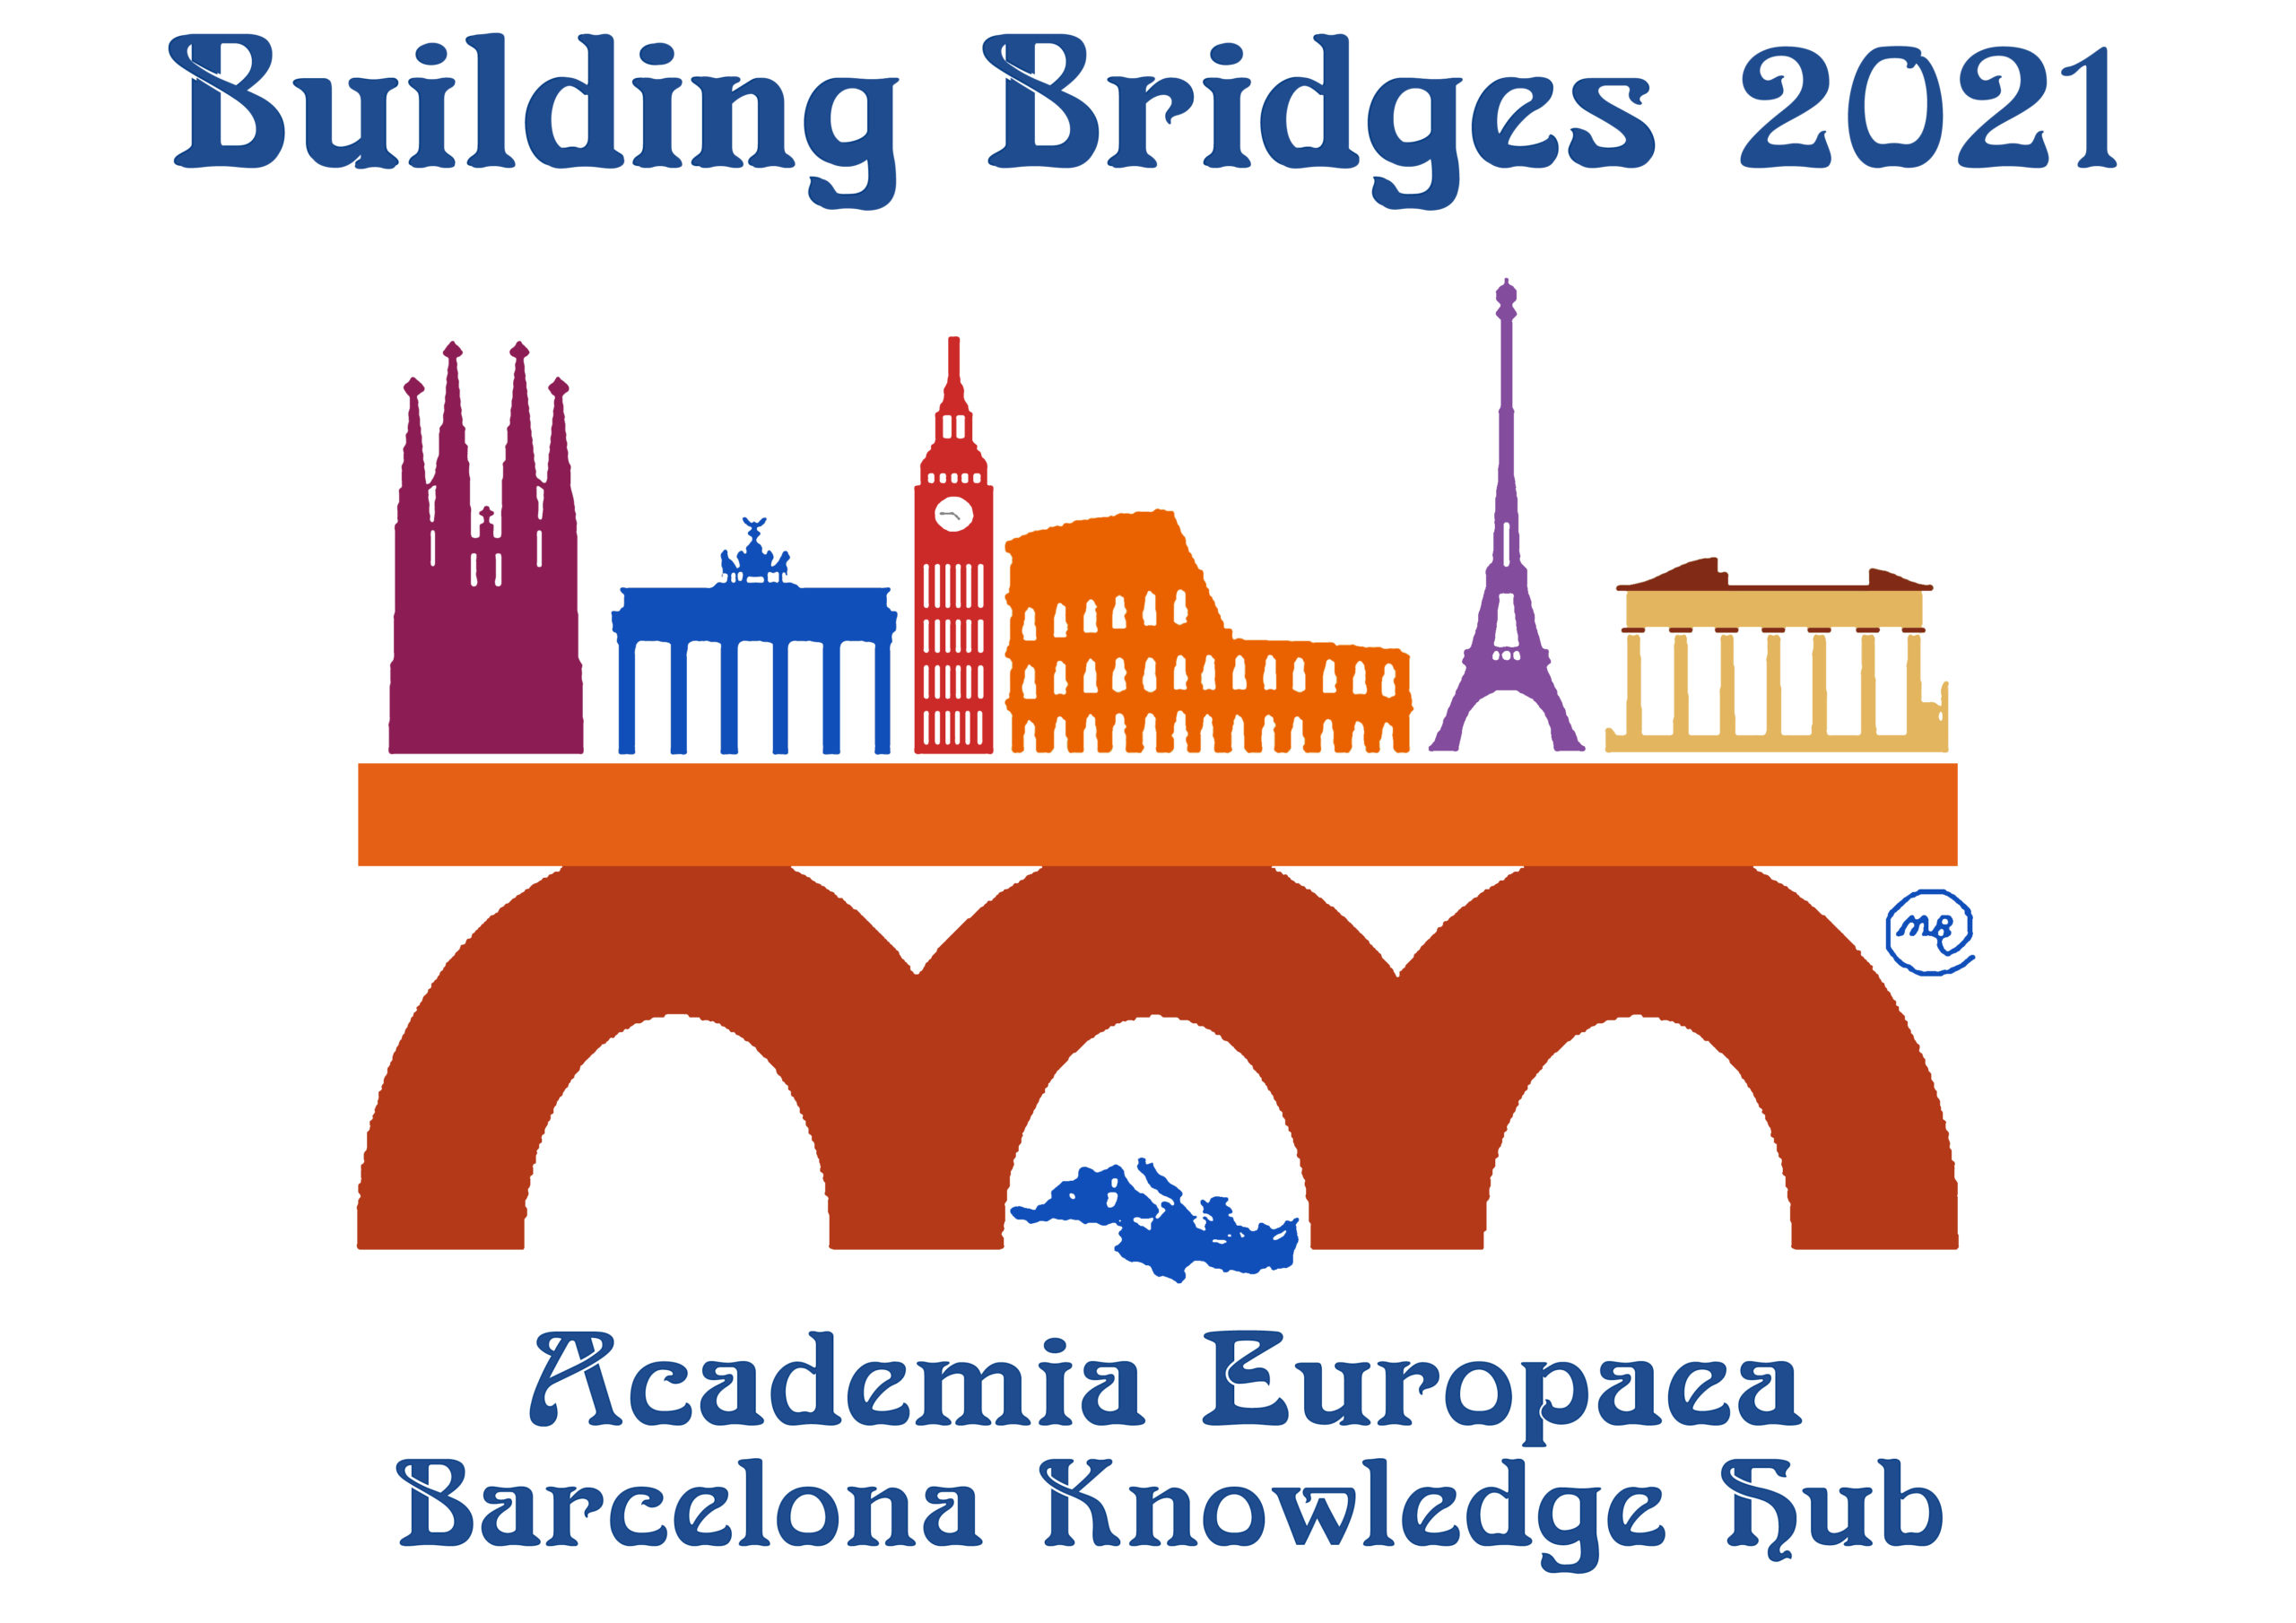 Building Bridges 2021